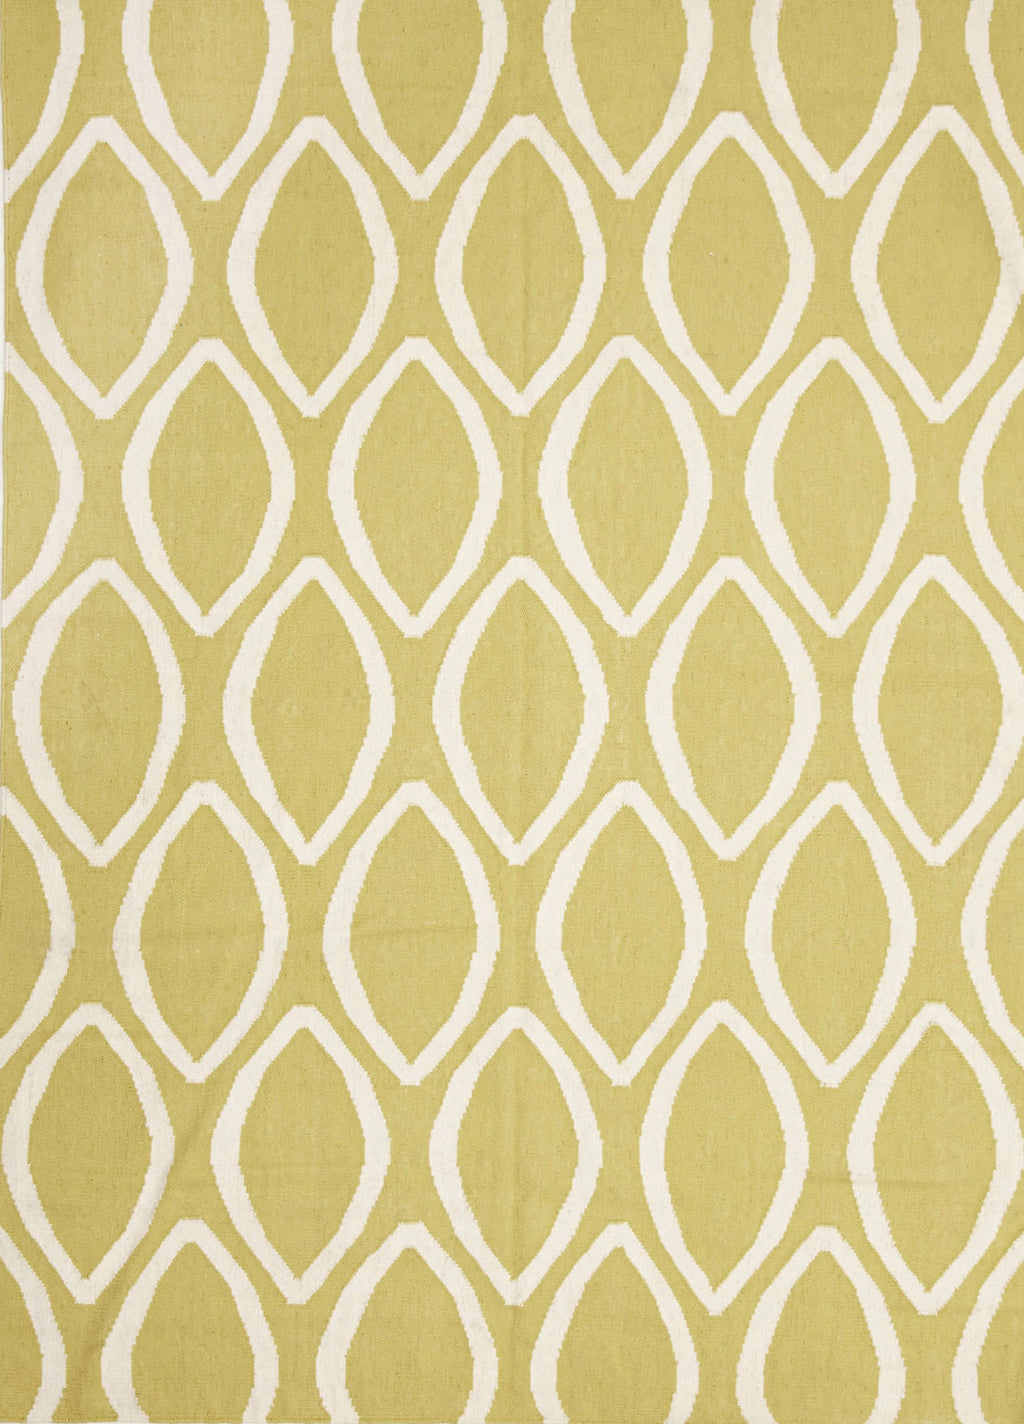 Rio Flat Weave Oval Print Rug Yellow